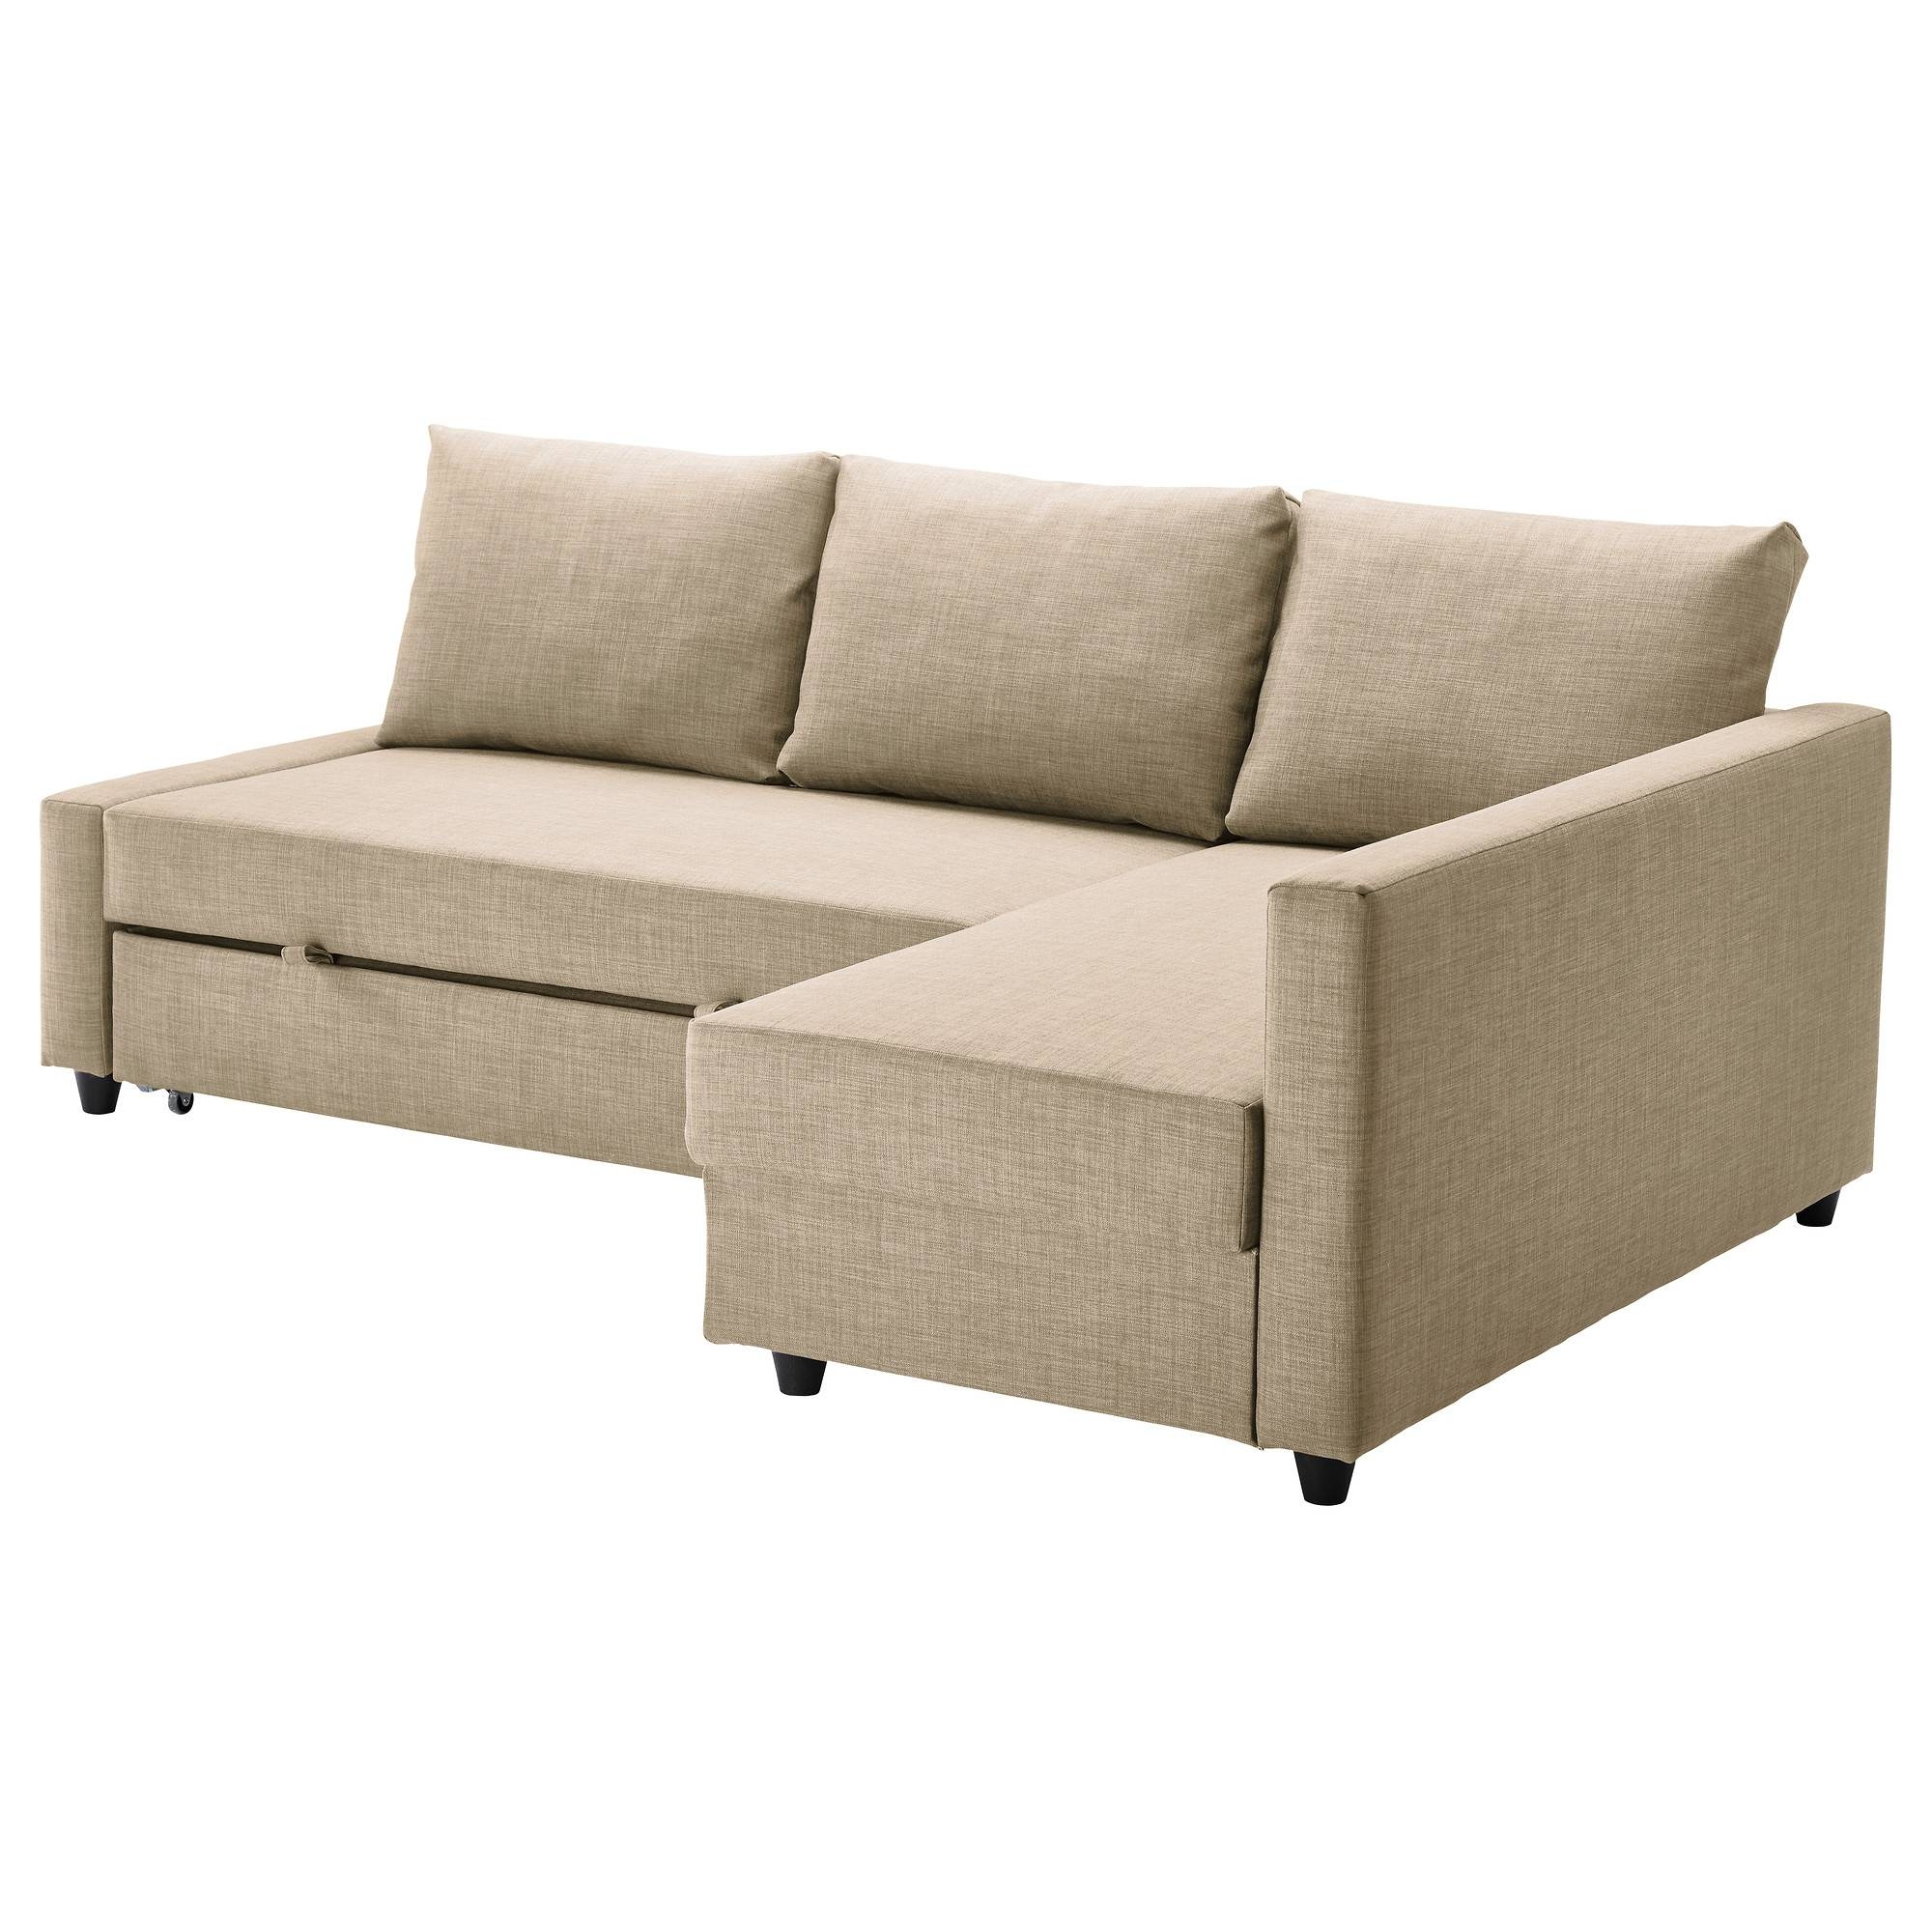 Friheten Sleeper Sectional,3 Seat W/storage - Skiftebo Dark Gray regarding Ikea Sectional Sofa Sleeper (Image 5 of 25)